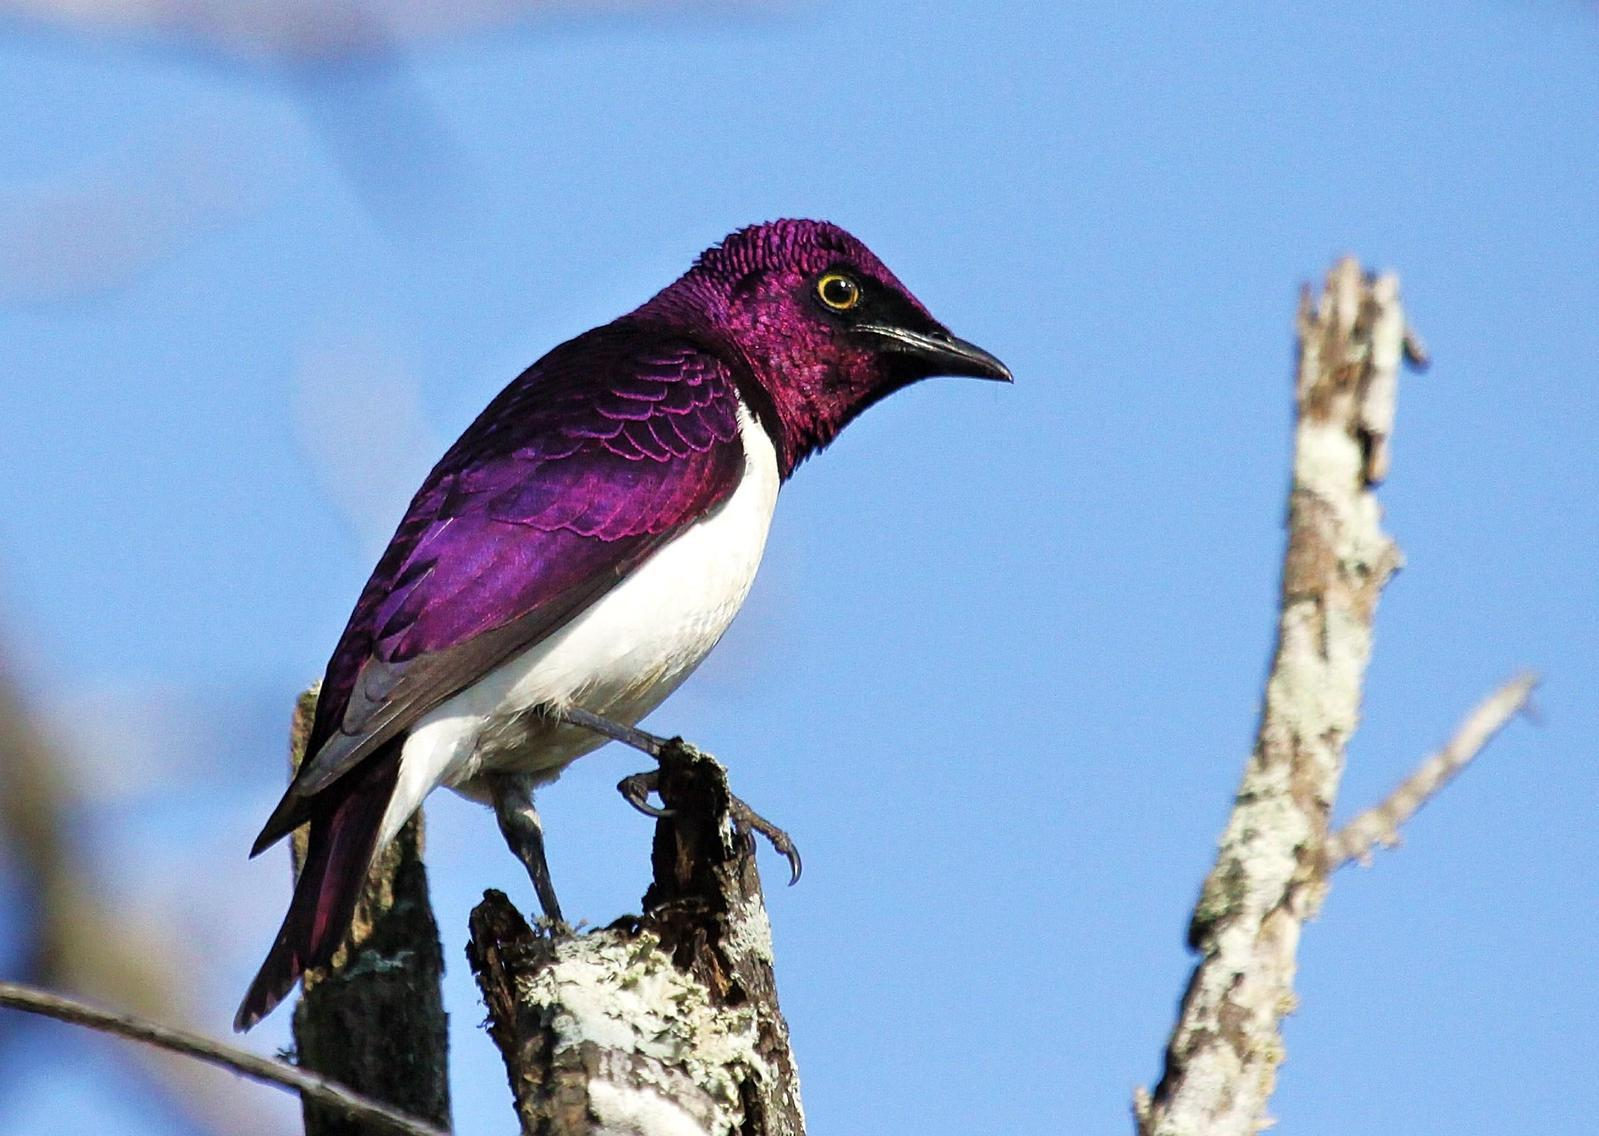 Violet-backed Starling Photo by Matthew McCluskey